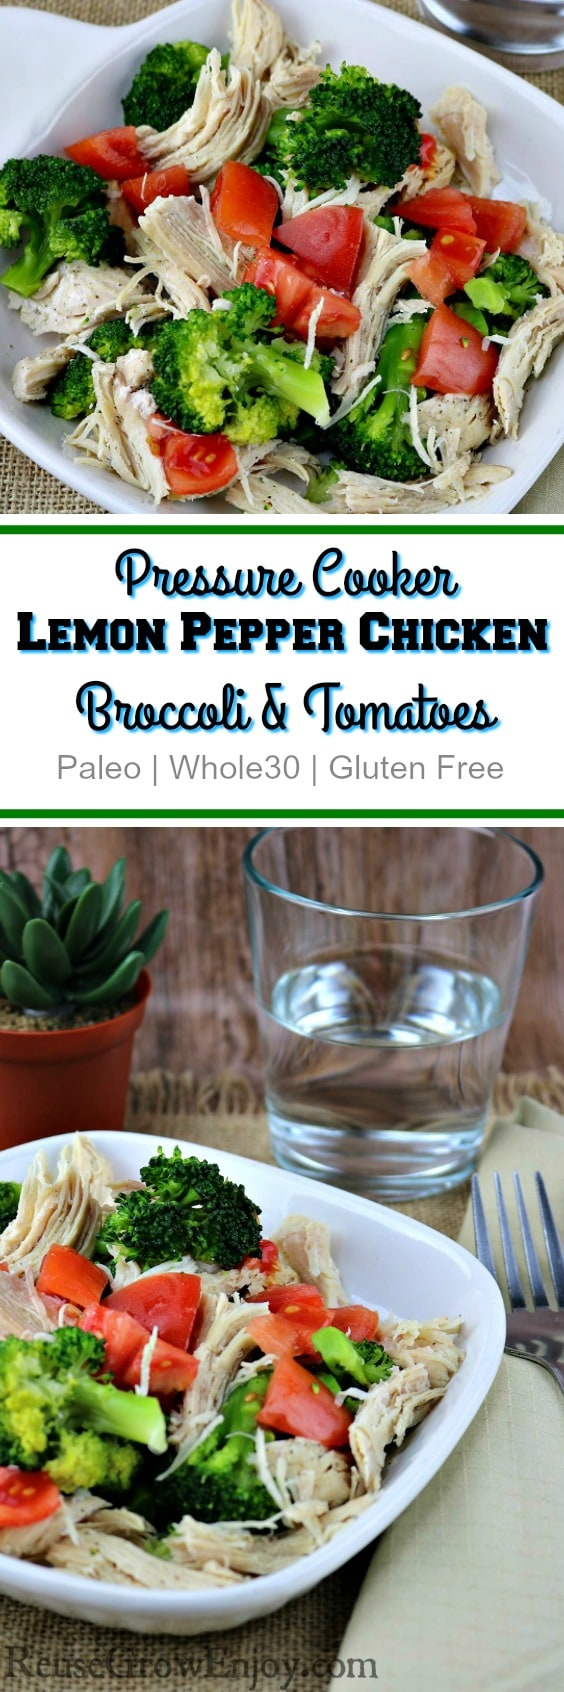 I have a pretty great pressure cooker recipe for you to try. It is for lemon pepper chicken with broccoli and tomatoes. It is both Paleo and Whole30!